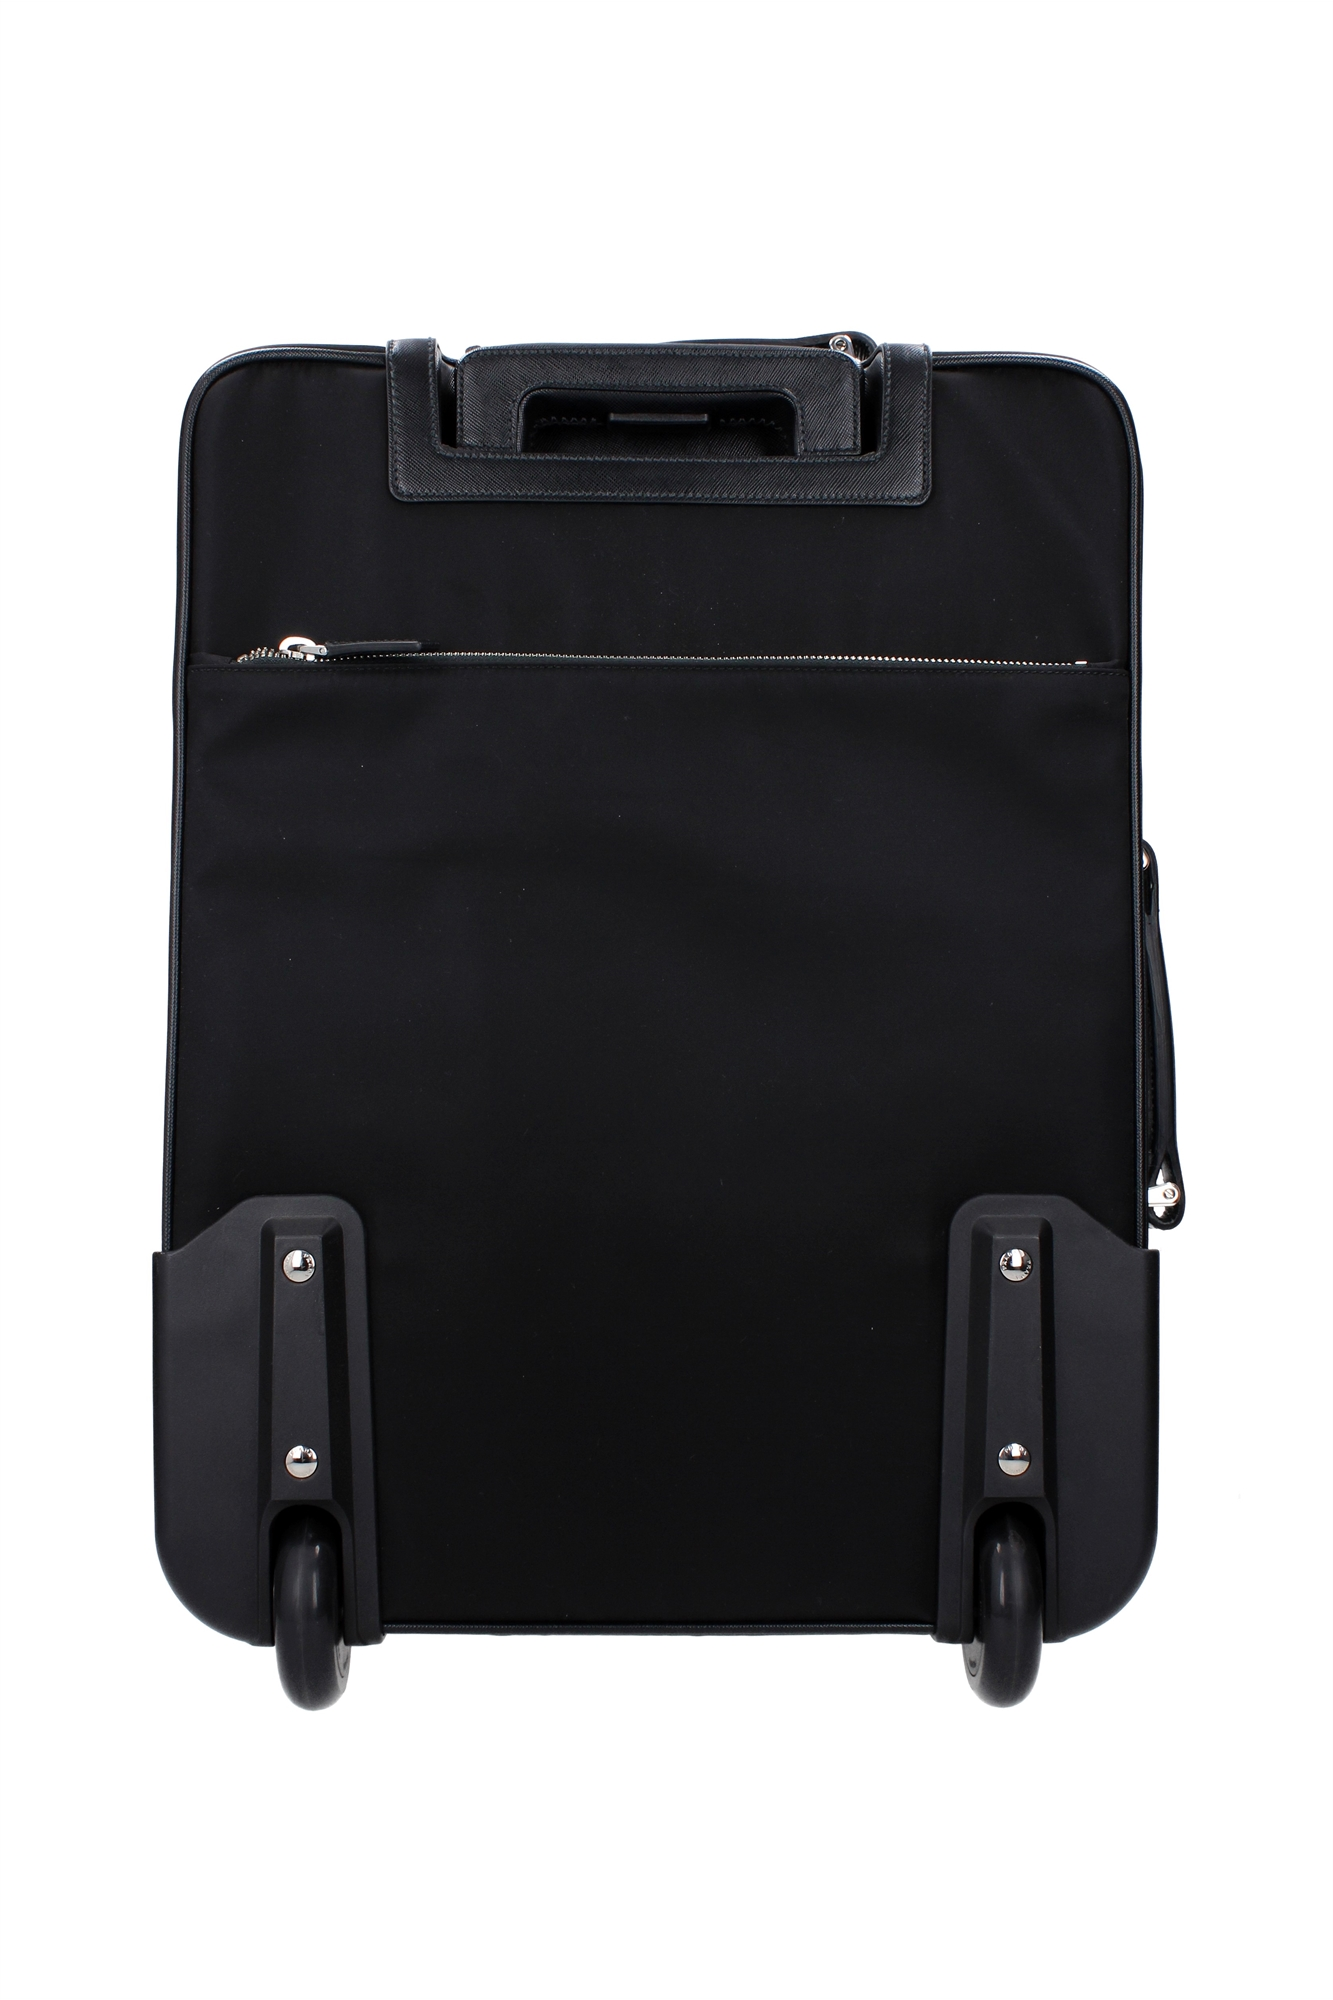 8ce0ddbaadf4 Prada Travel Bags Luggage | Stanford Center for Opportunity Policy ...